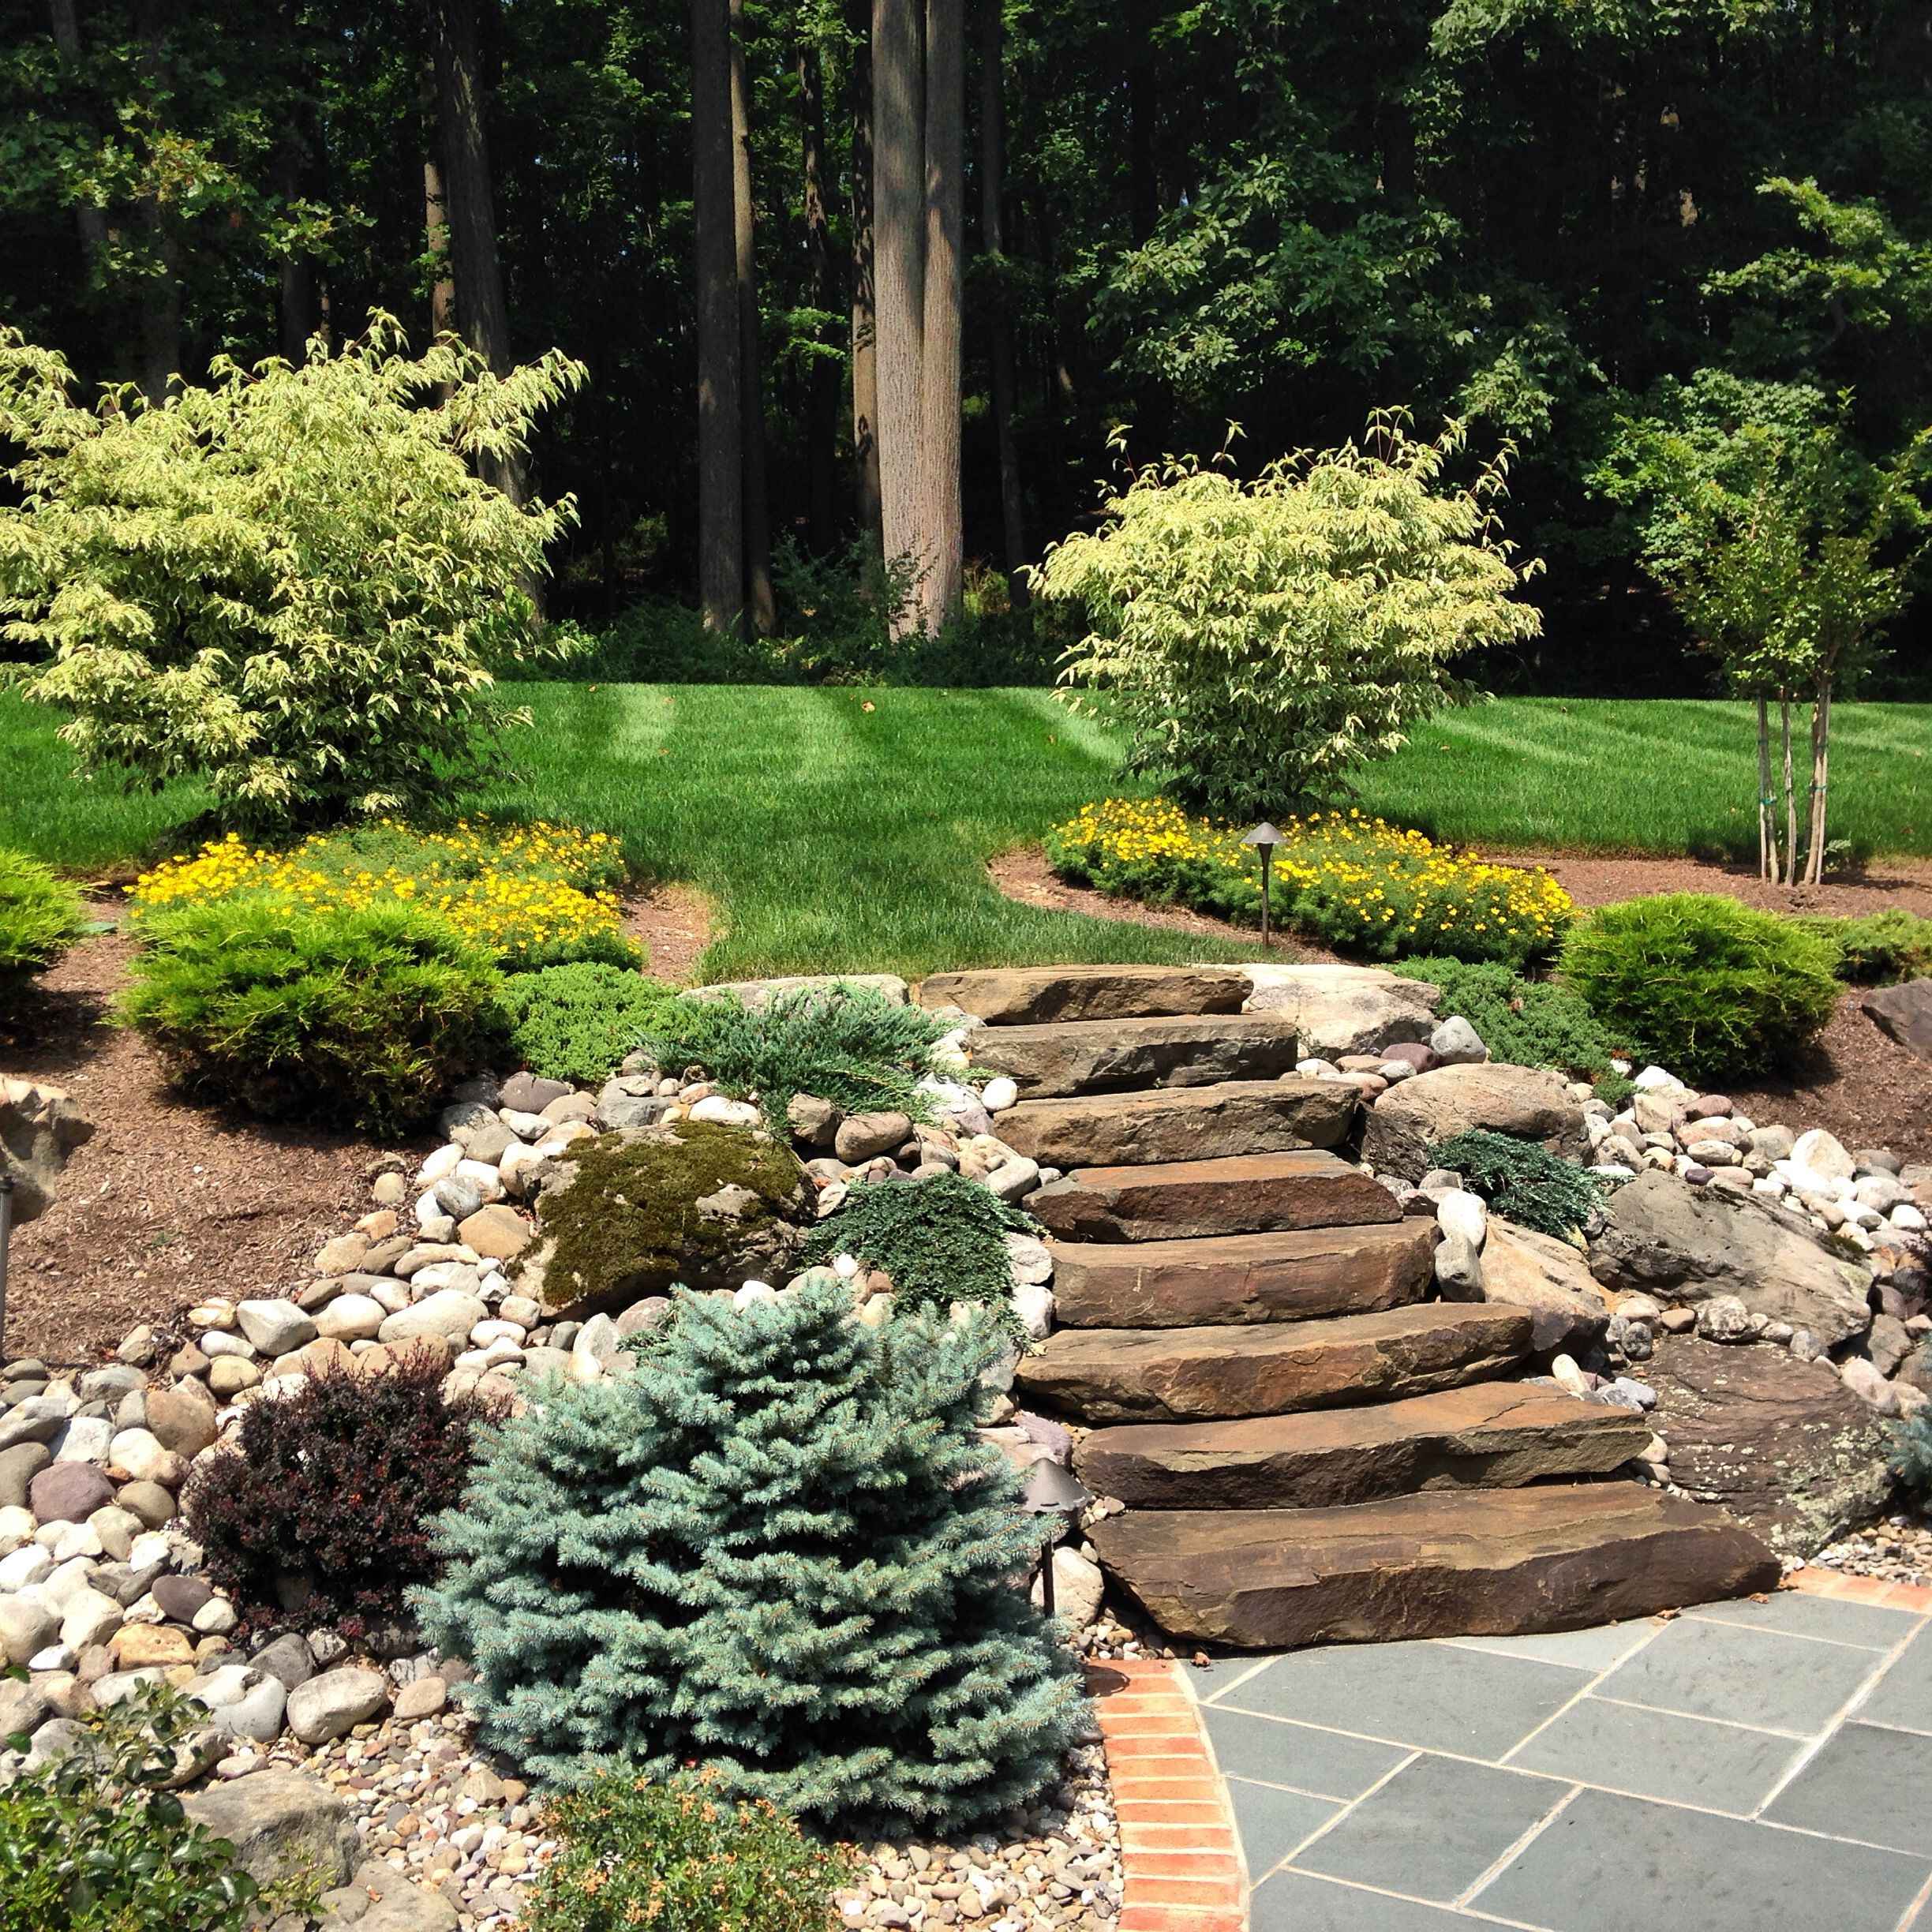 Natural Stone Steps Mixed With Boulders Leading Up From Bluestone Patio 973 476 4863 Landscaping With Rocks Patio Stones Backyard Landscaping